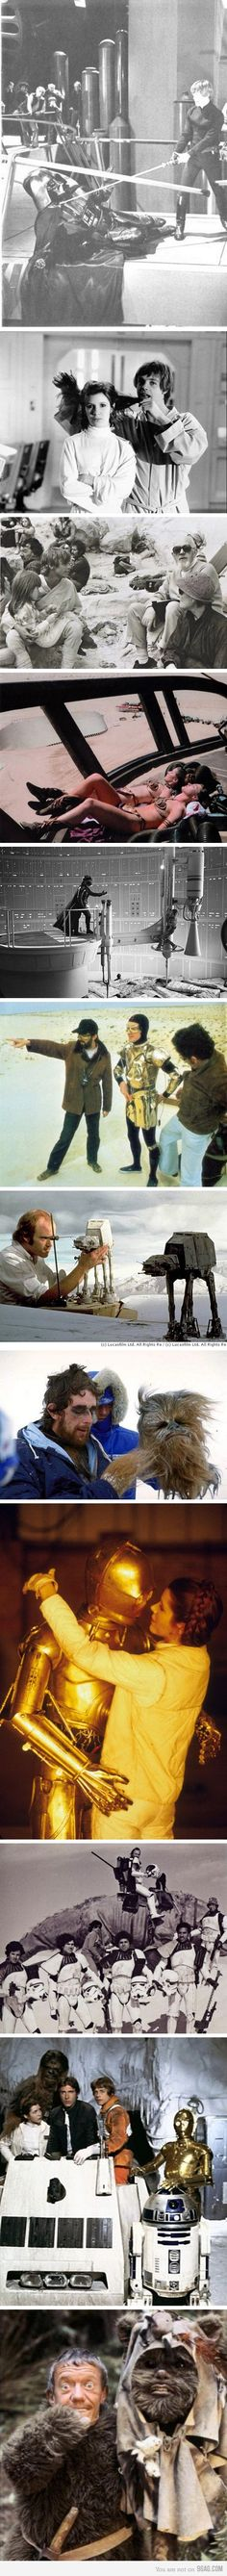 Behind the scenes photos. #starwars